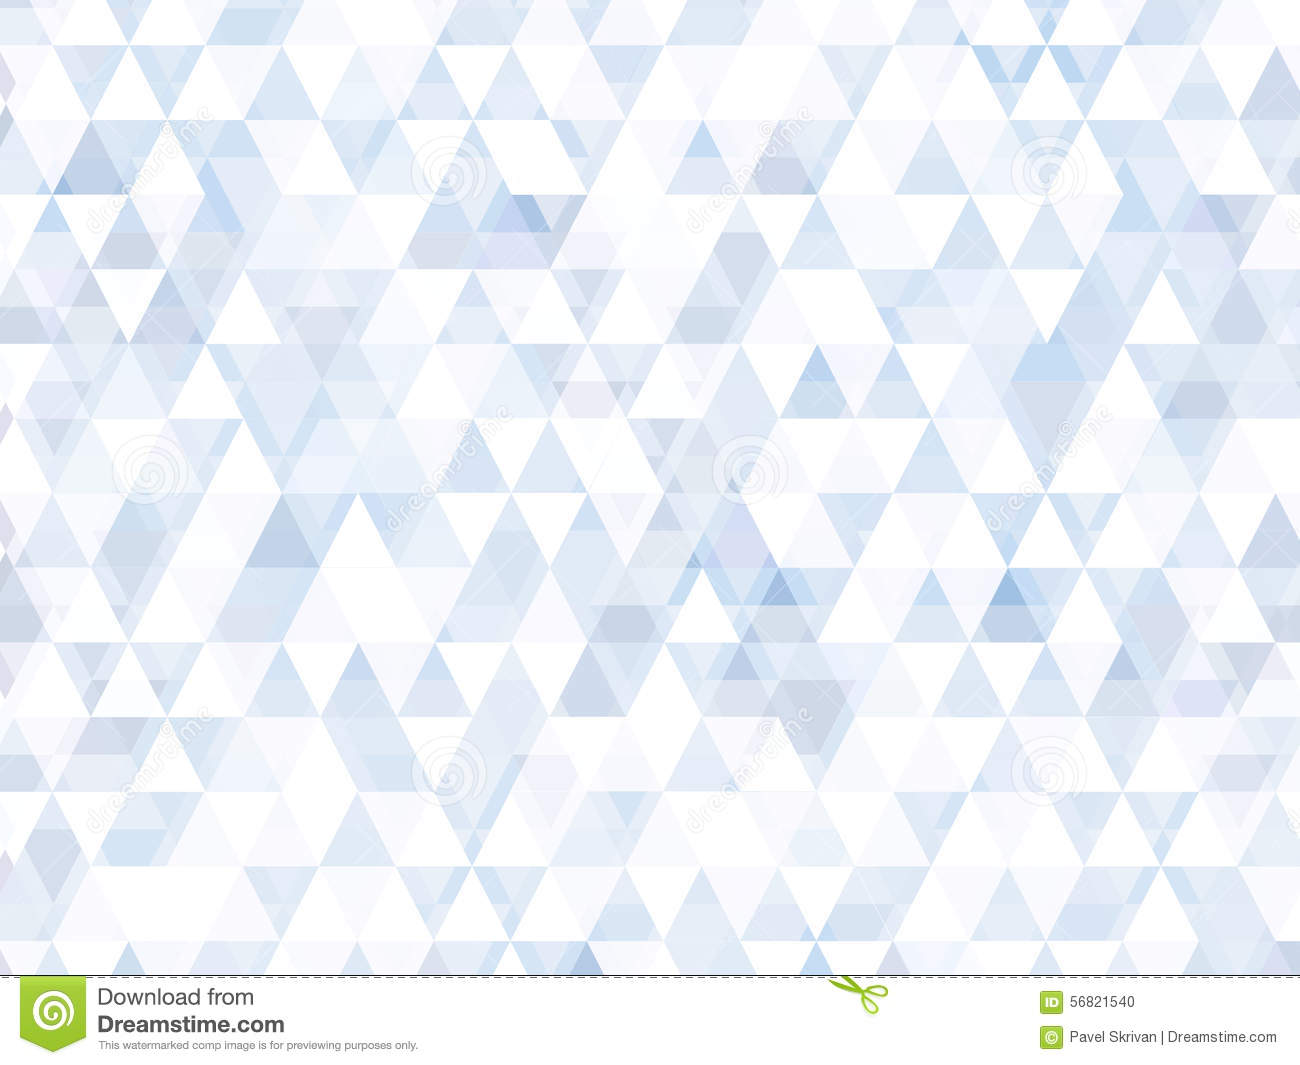 Top Illustration Web Page Background Stock Illustration - Image: 52344551 TB87